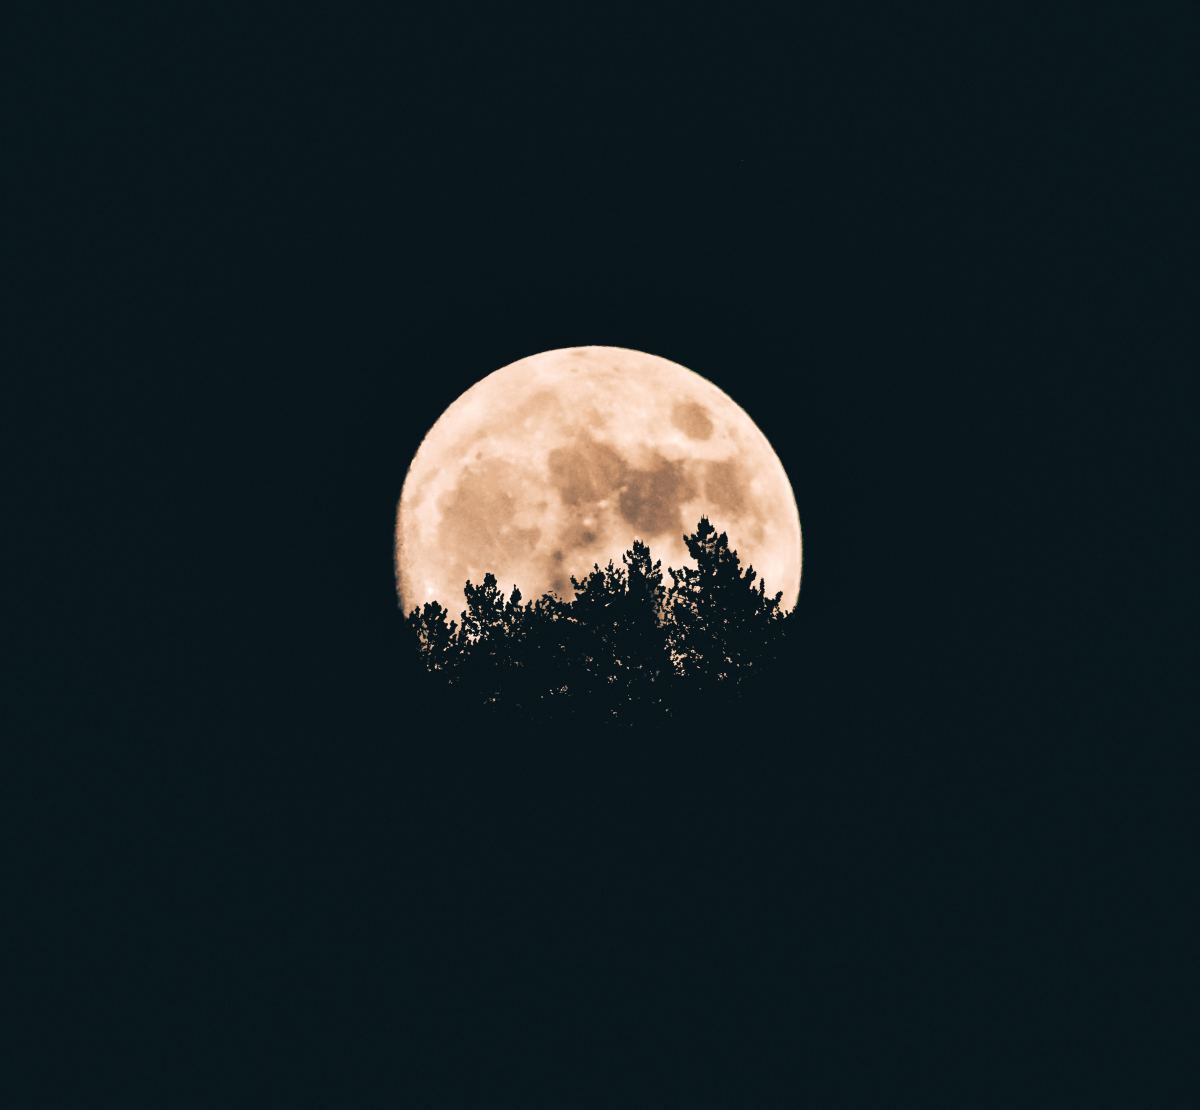 Full Moon shining brightly in the sky. Photo by Aron Visuals on Unsplash.